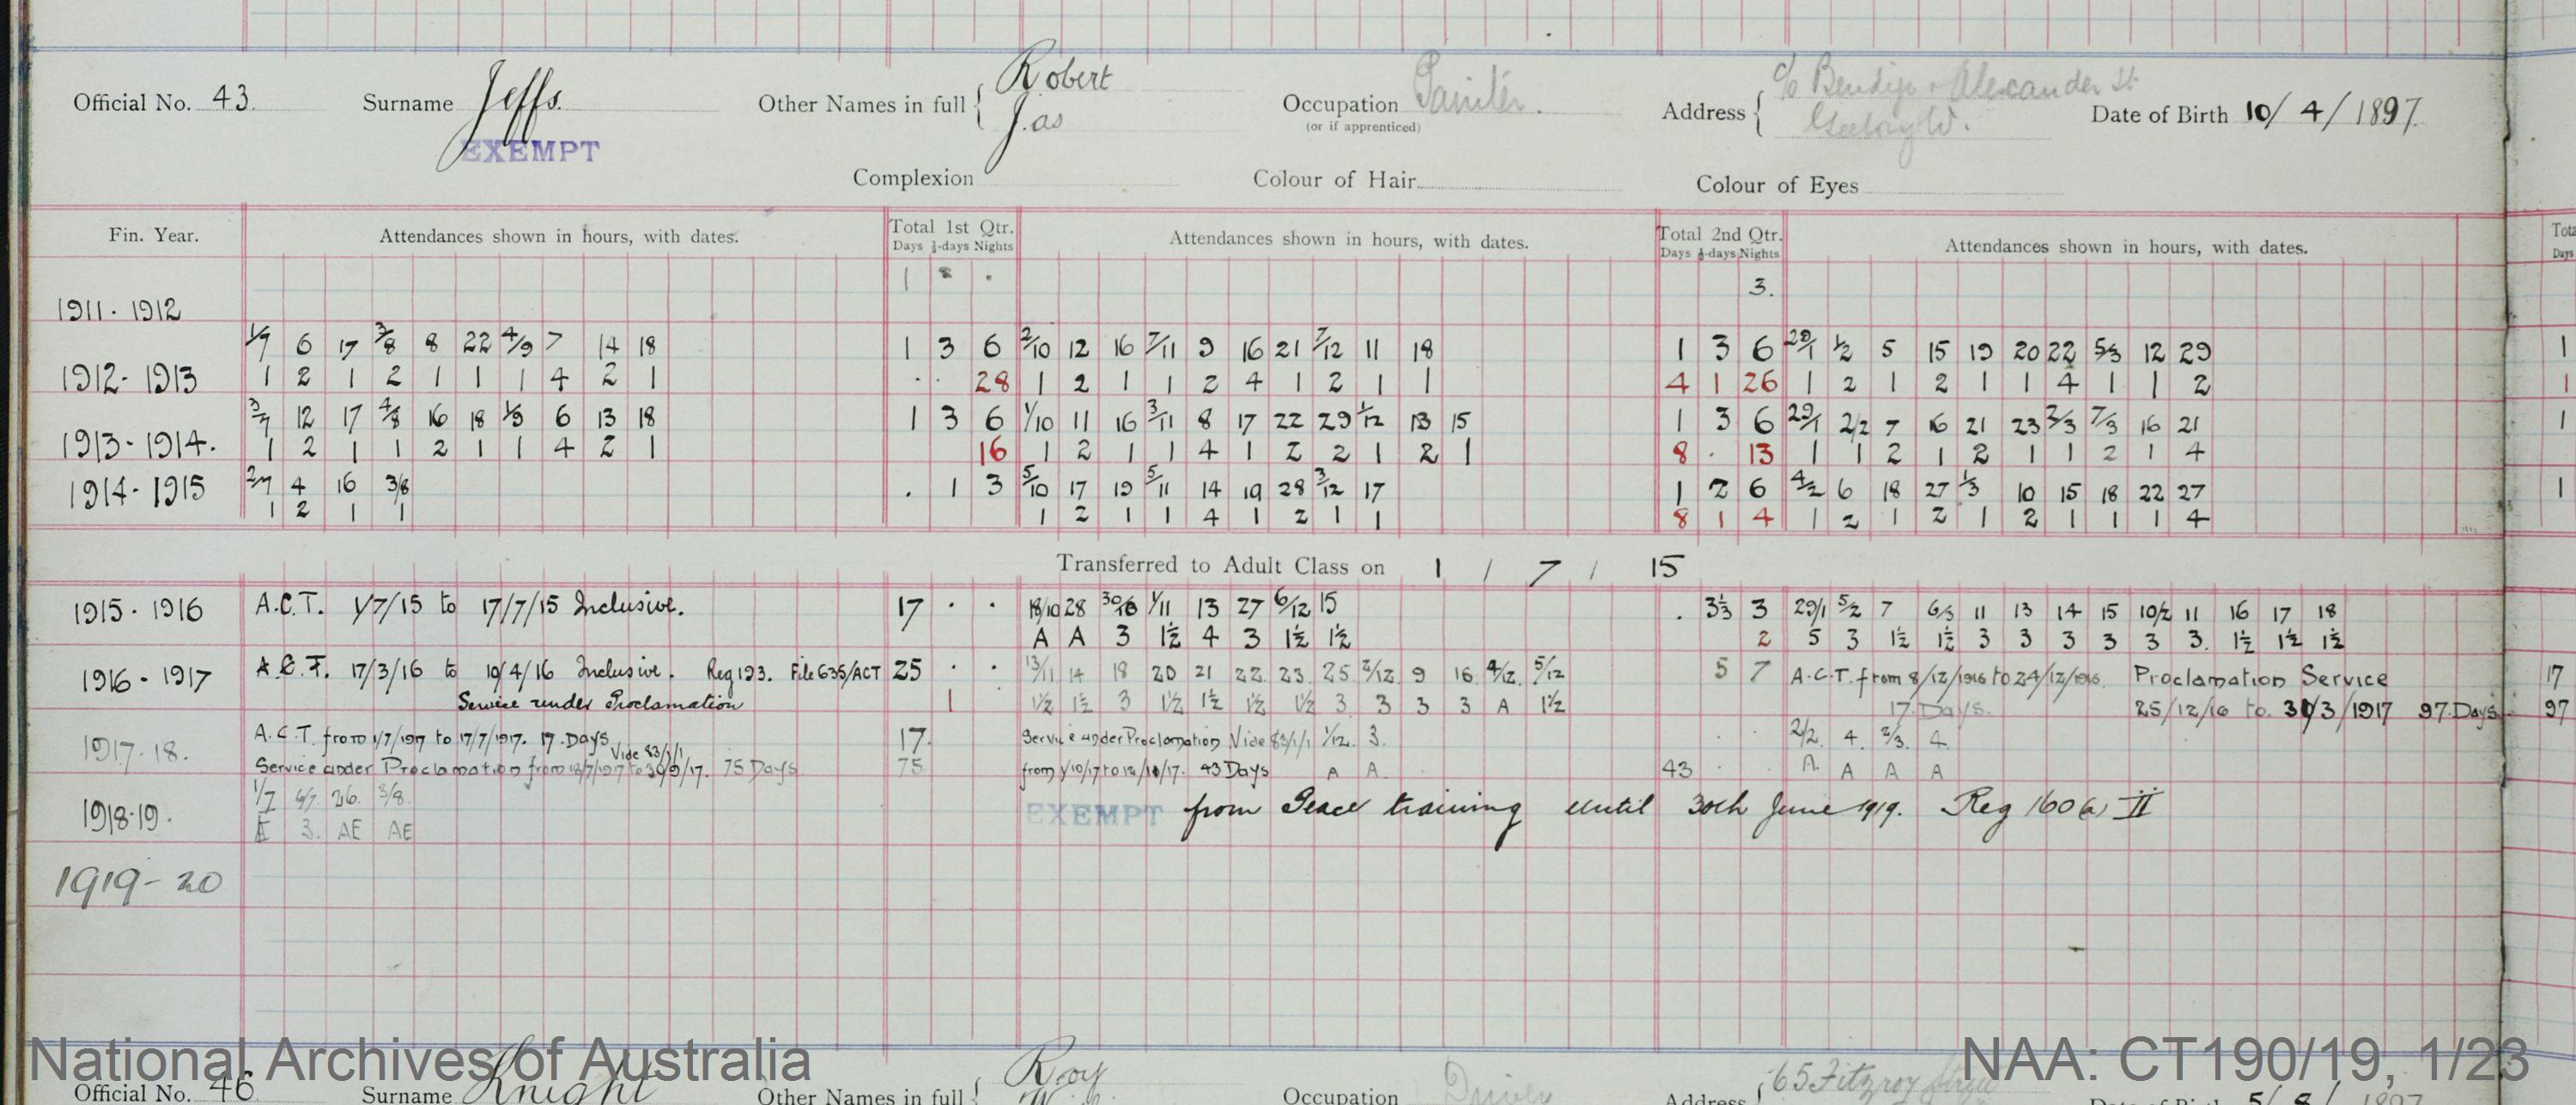 SURNAME - JEFFS;  GIVEN NAME(S) - Robert James;  OFFICIAL NUMBER - 43;  DATE OF BIRTH - 10 April 1897;  PLACE OF BIRTH - [Unknown];  NEXT OF KIN - [Unknown] ;  SERVICE/STATION - Geelong;  REGISTRATION DATE - 31 January 1911